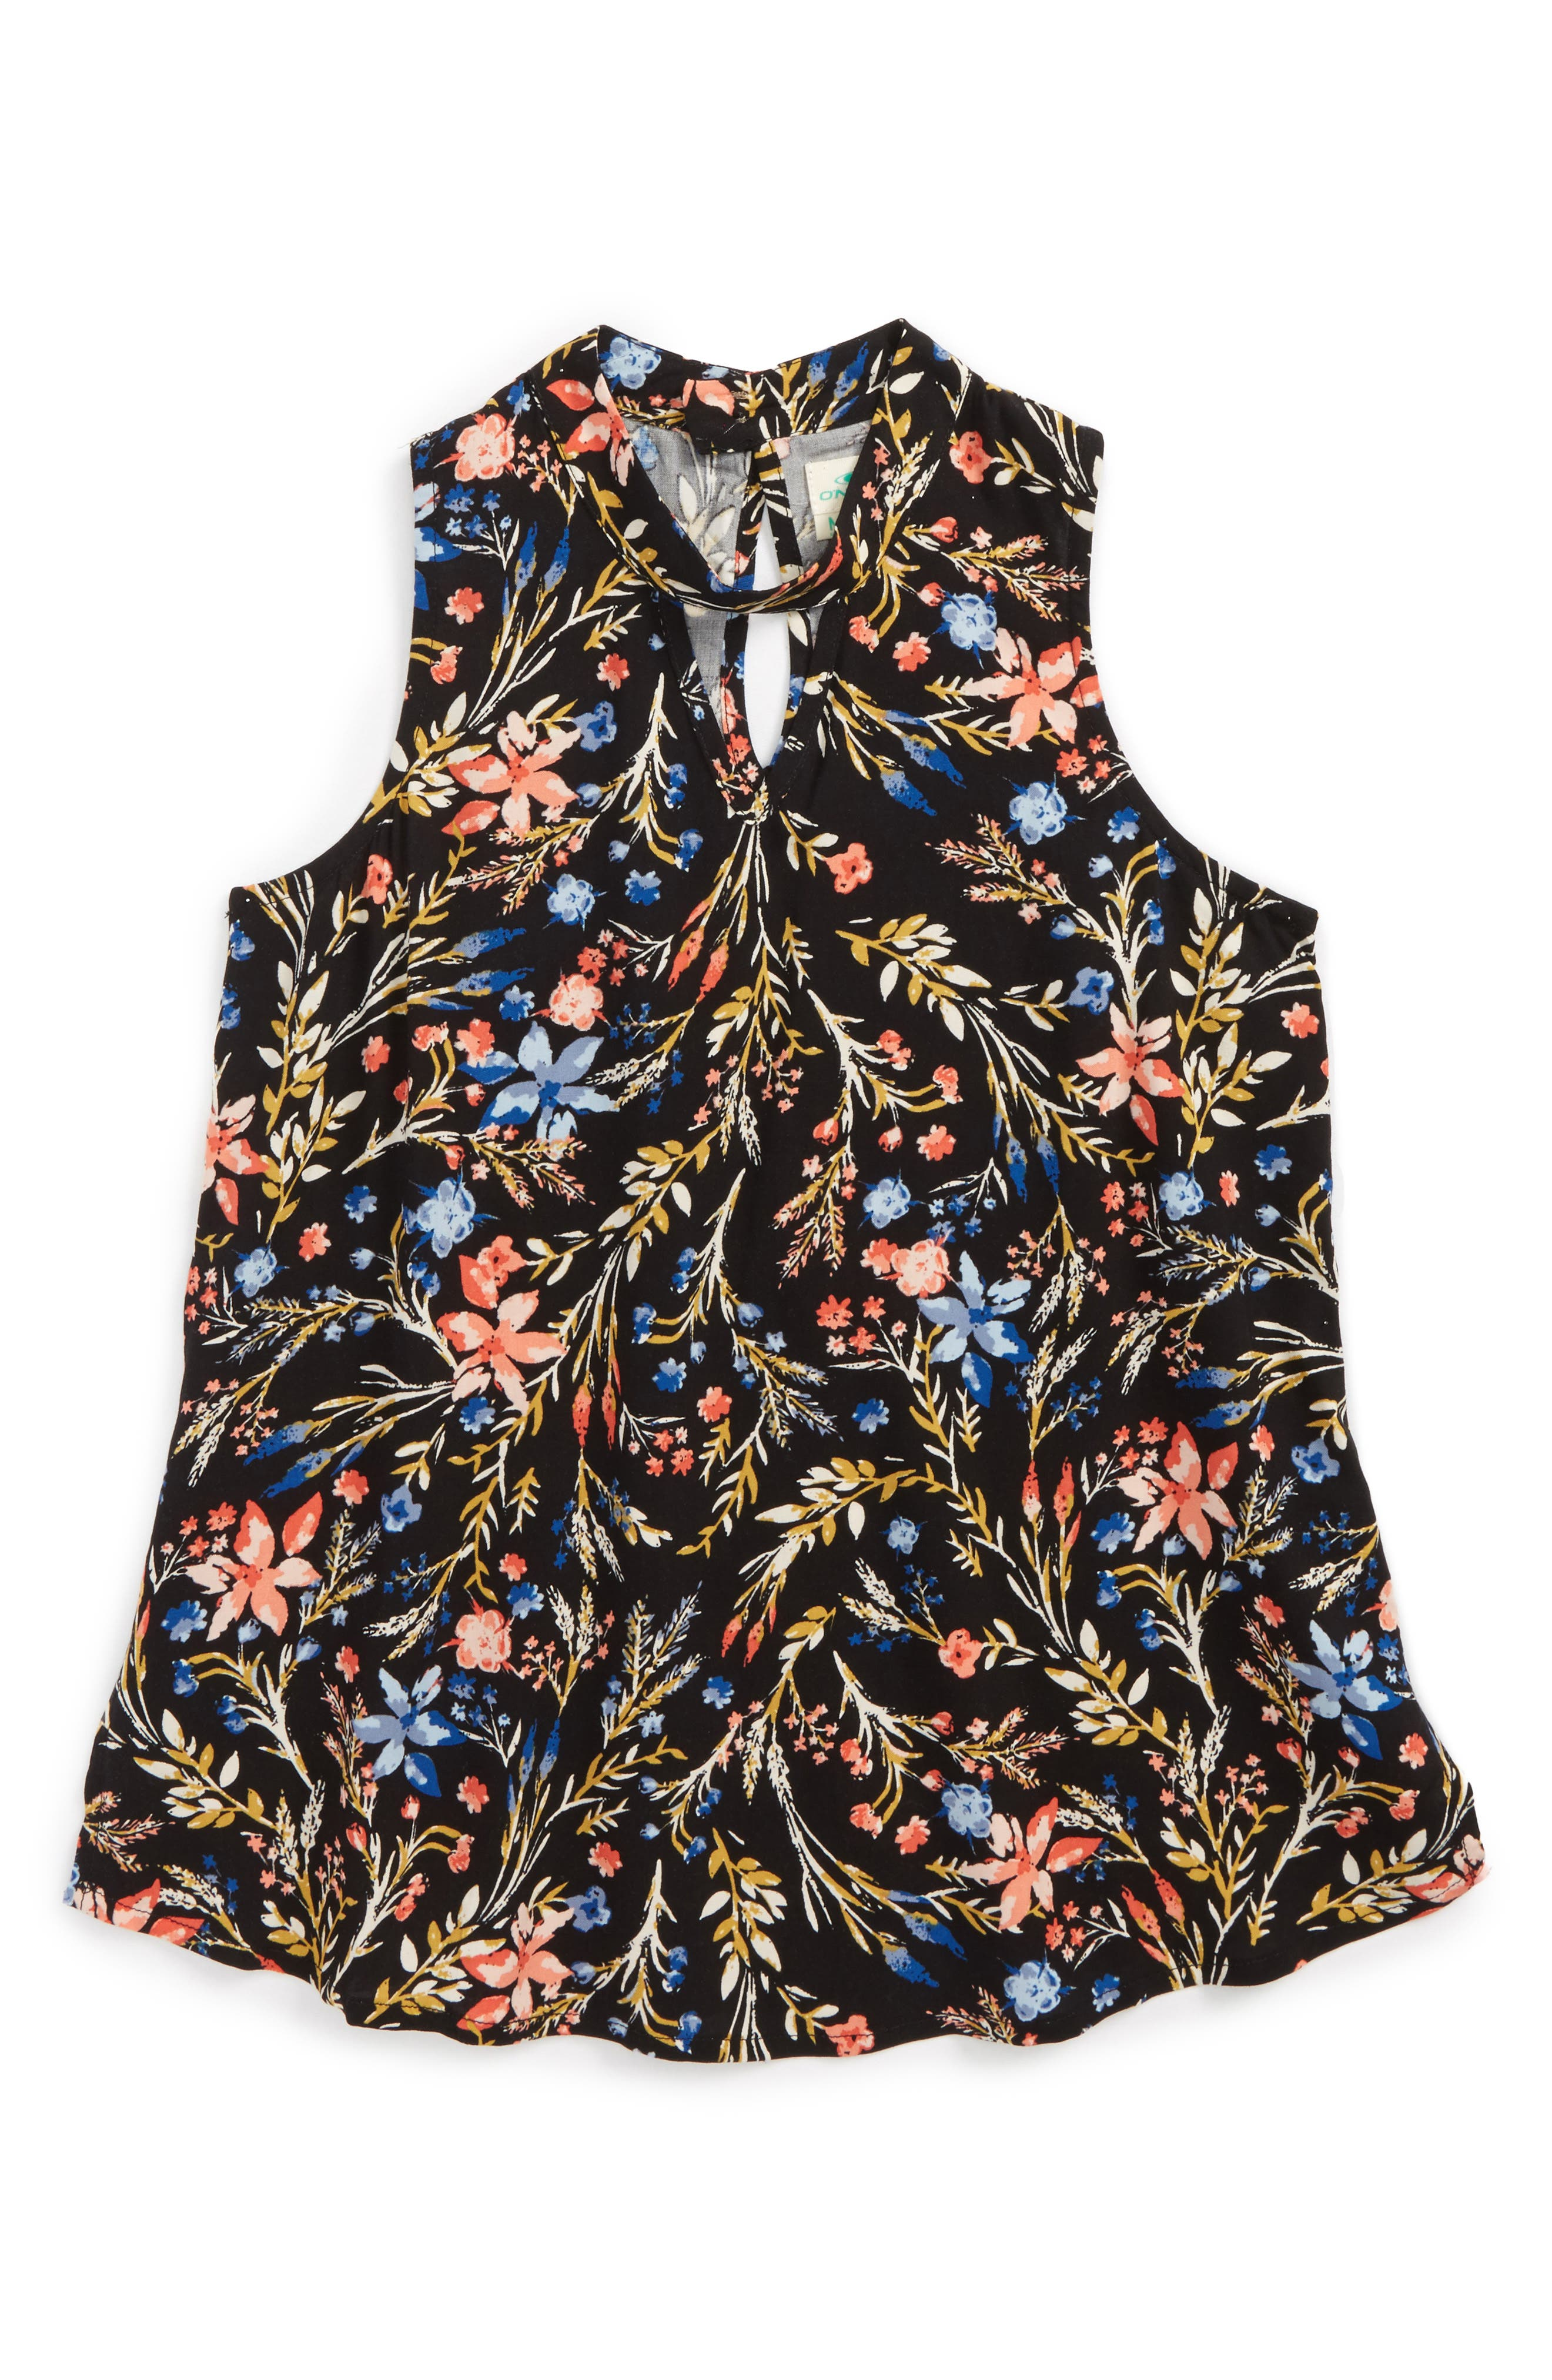 O'Neill Indo Floral Print Woven Top (Big Girls)